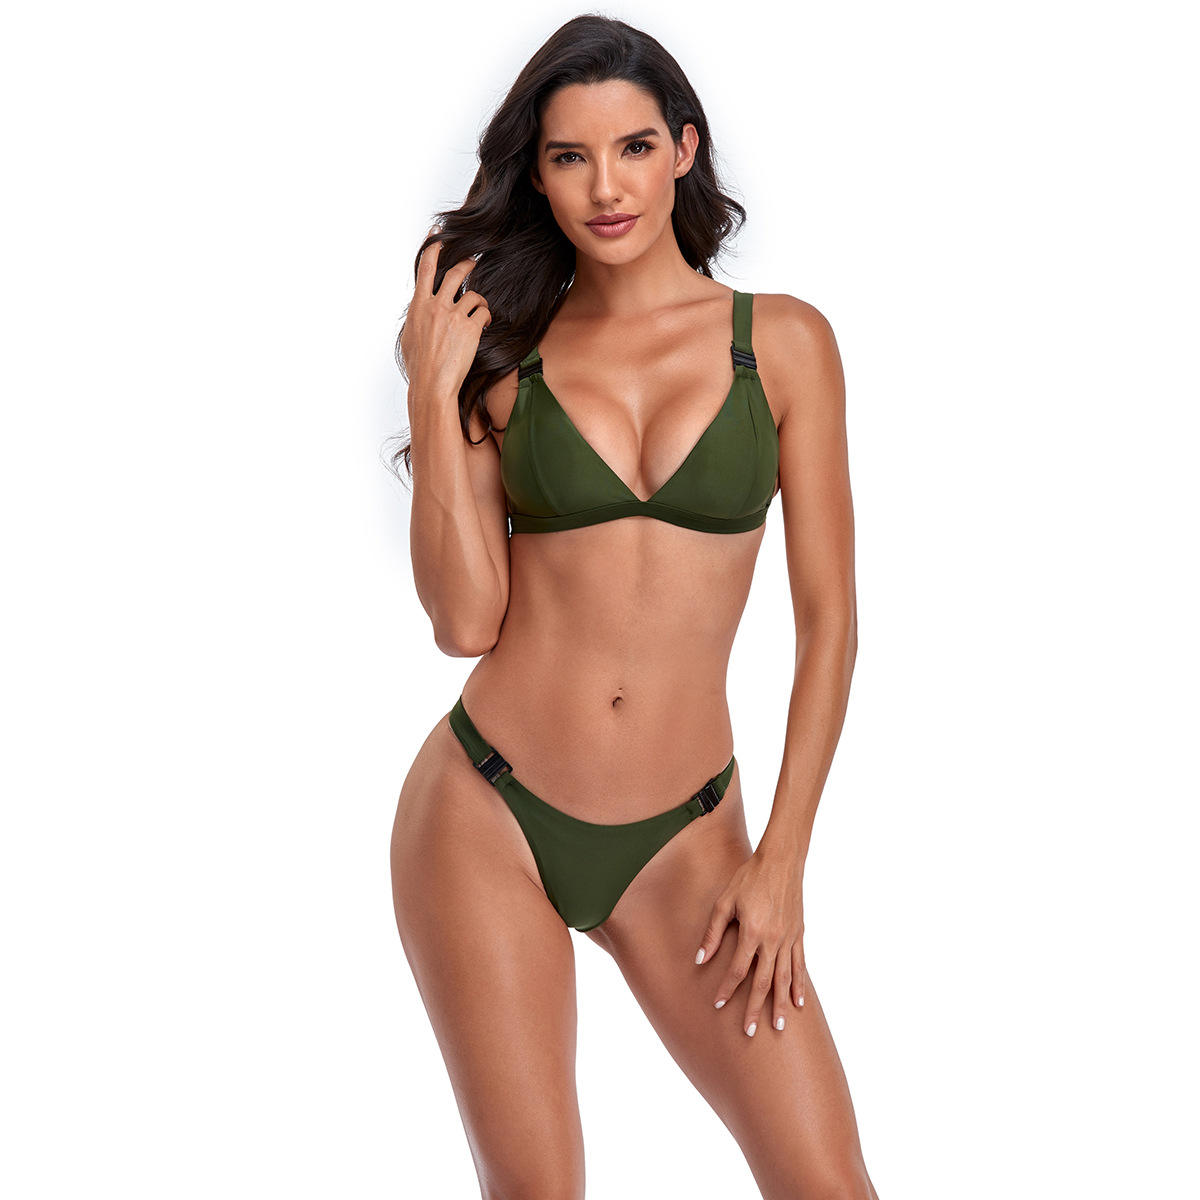 2021 European and American new arrival solid color split bikini sexy triangle ladies swimwear